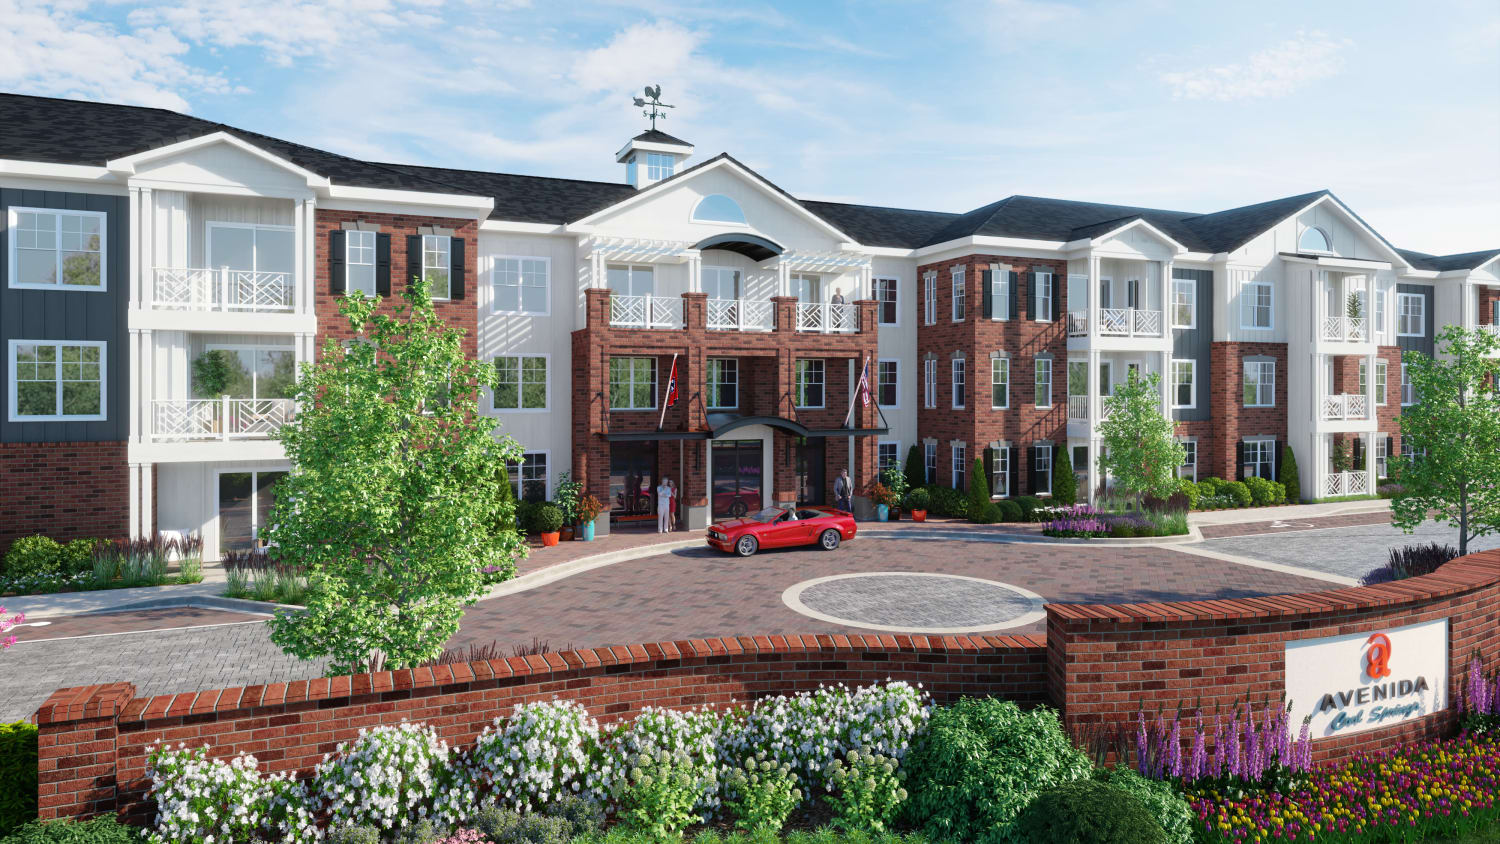 Rendering of front entrance at Avenida Cool Springs senior living apartments in Franklin, Tennessee